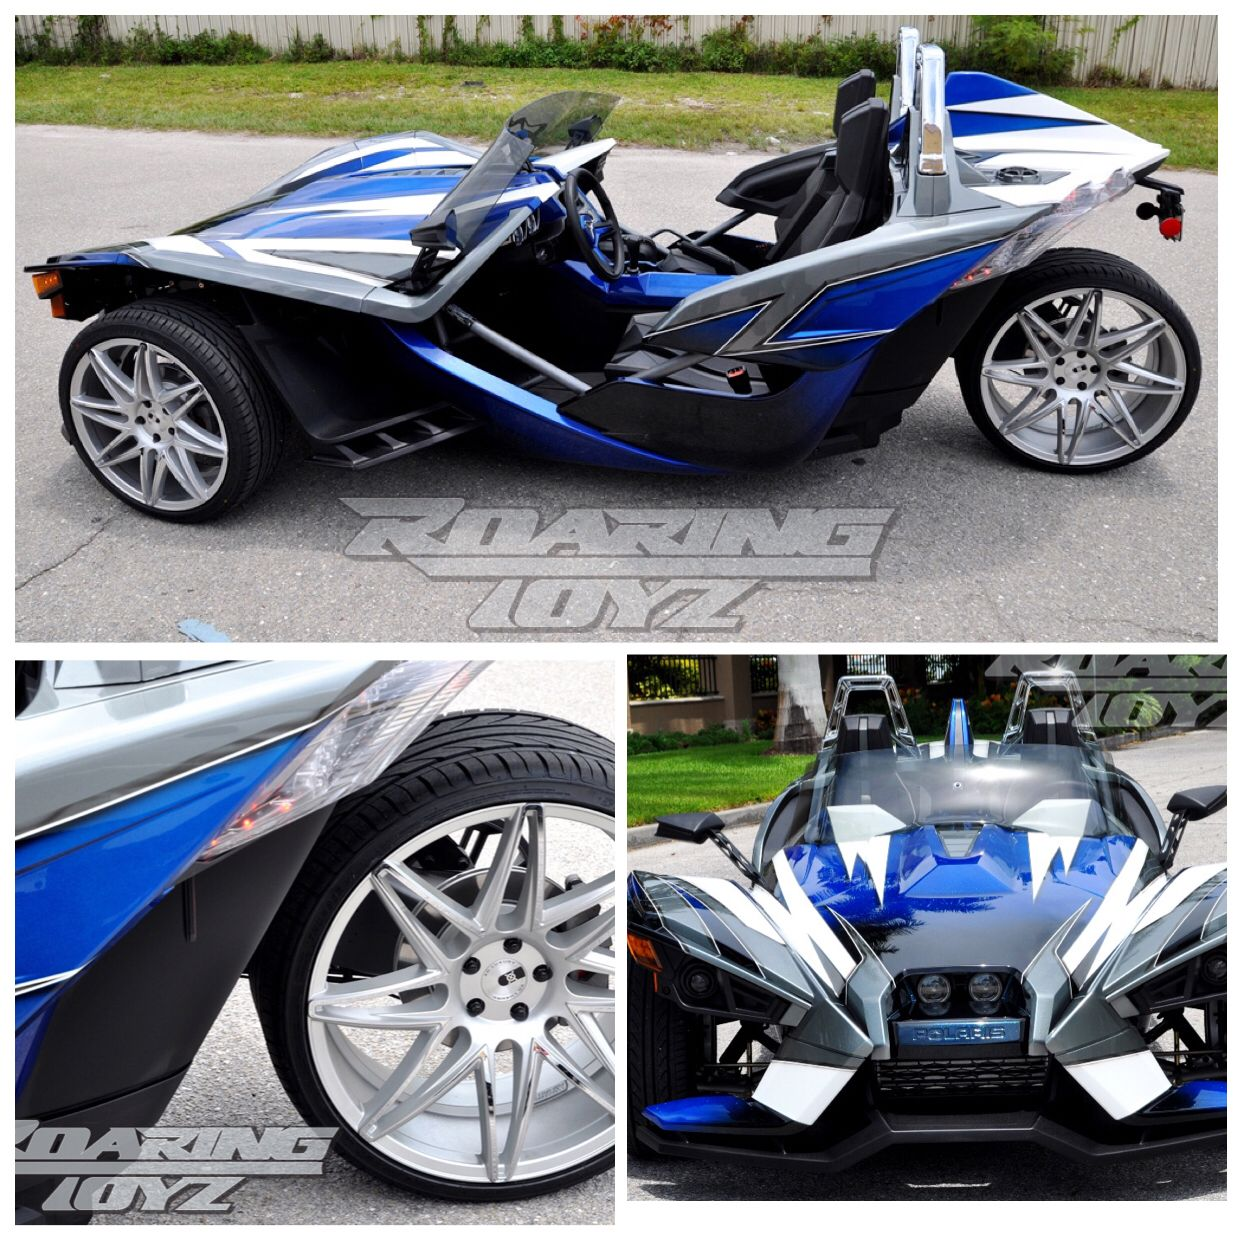 Motorcycle Turbo Modified: Custom Polaris Slingshot Turbo Charged With 283hp 329lbs